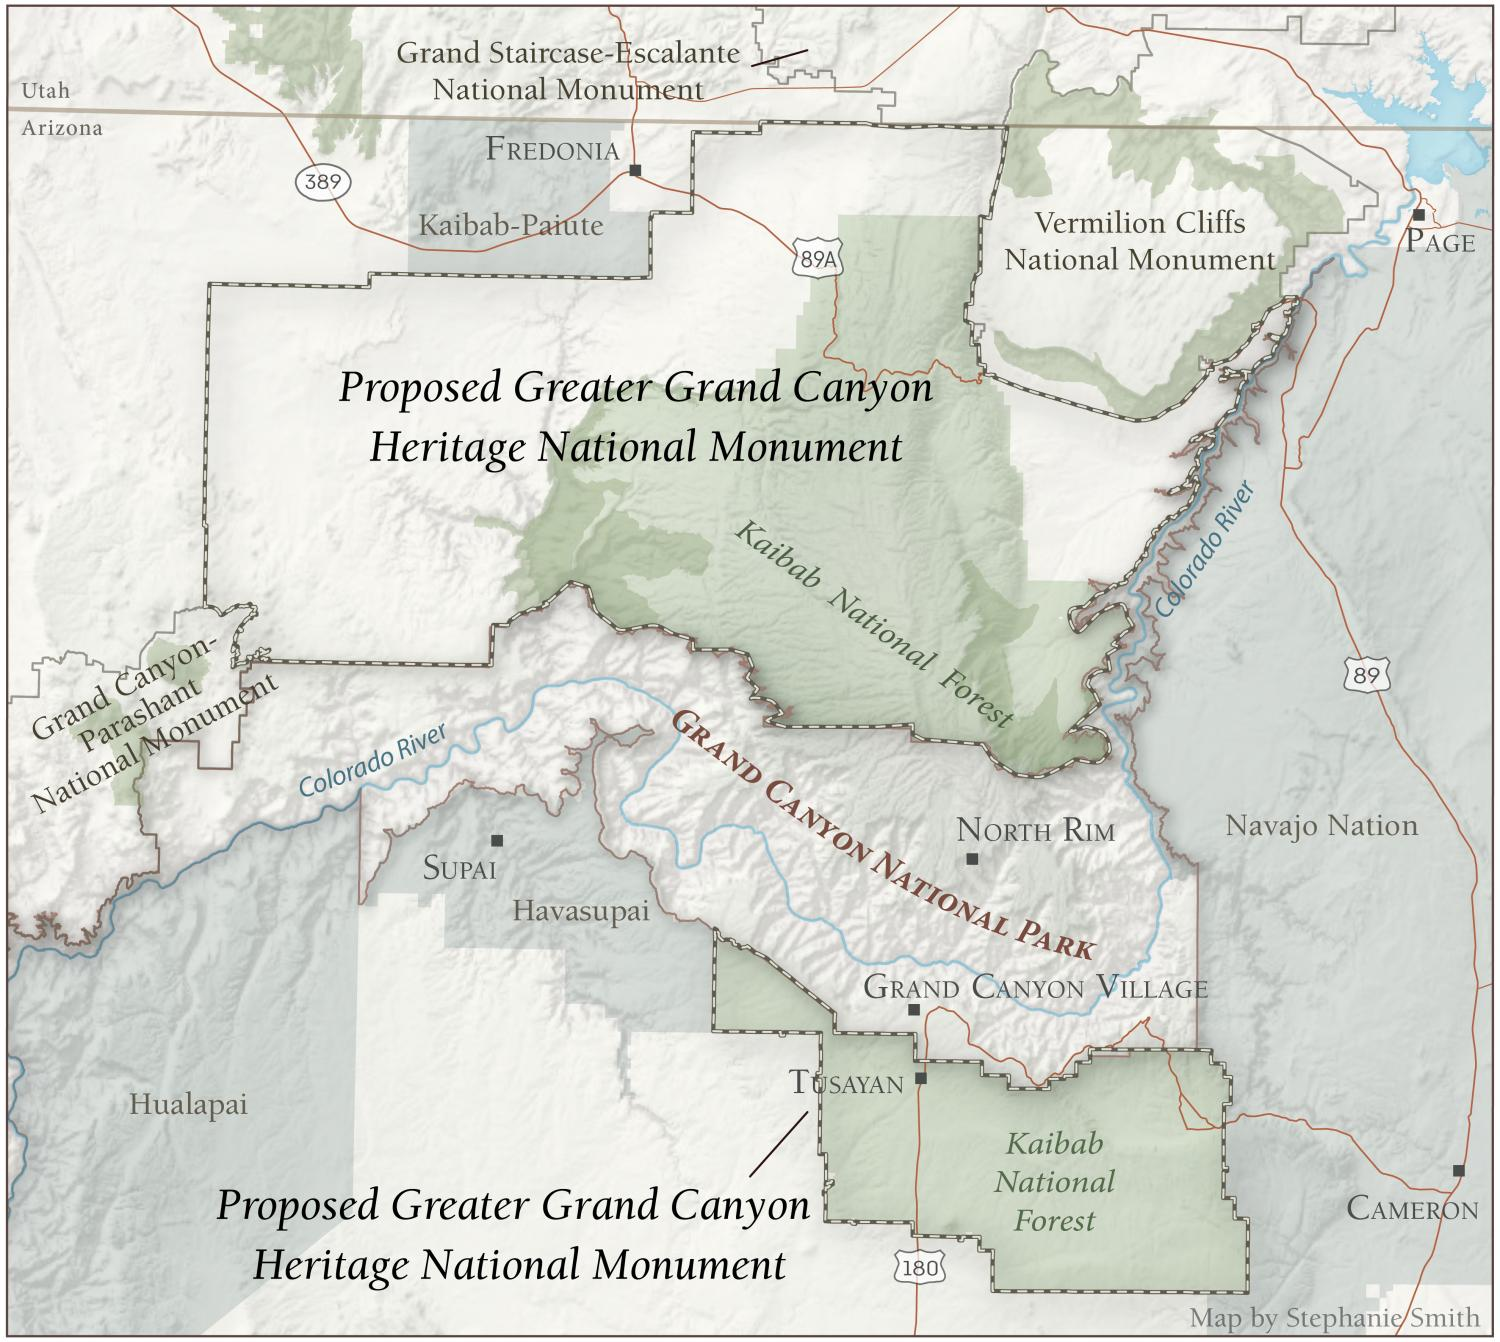 Map of the Proposed Greater Grand Canyon Heritage National Monument